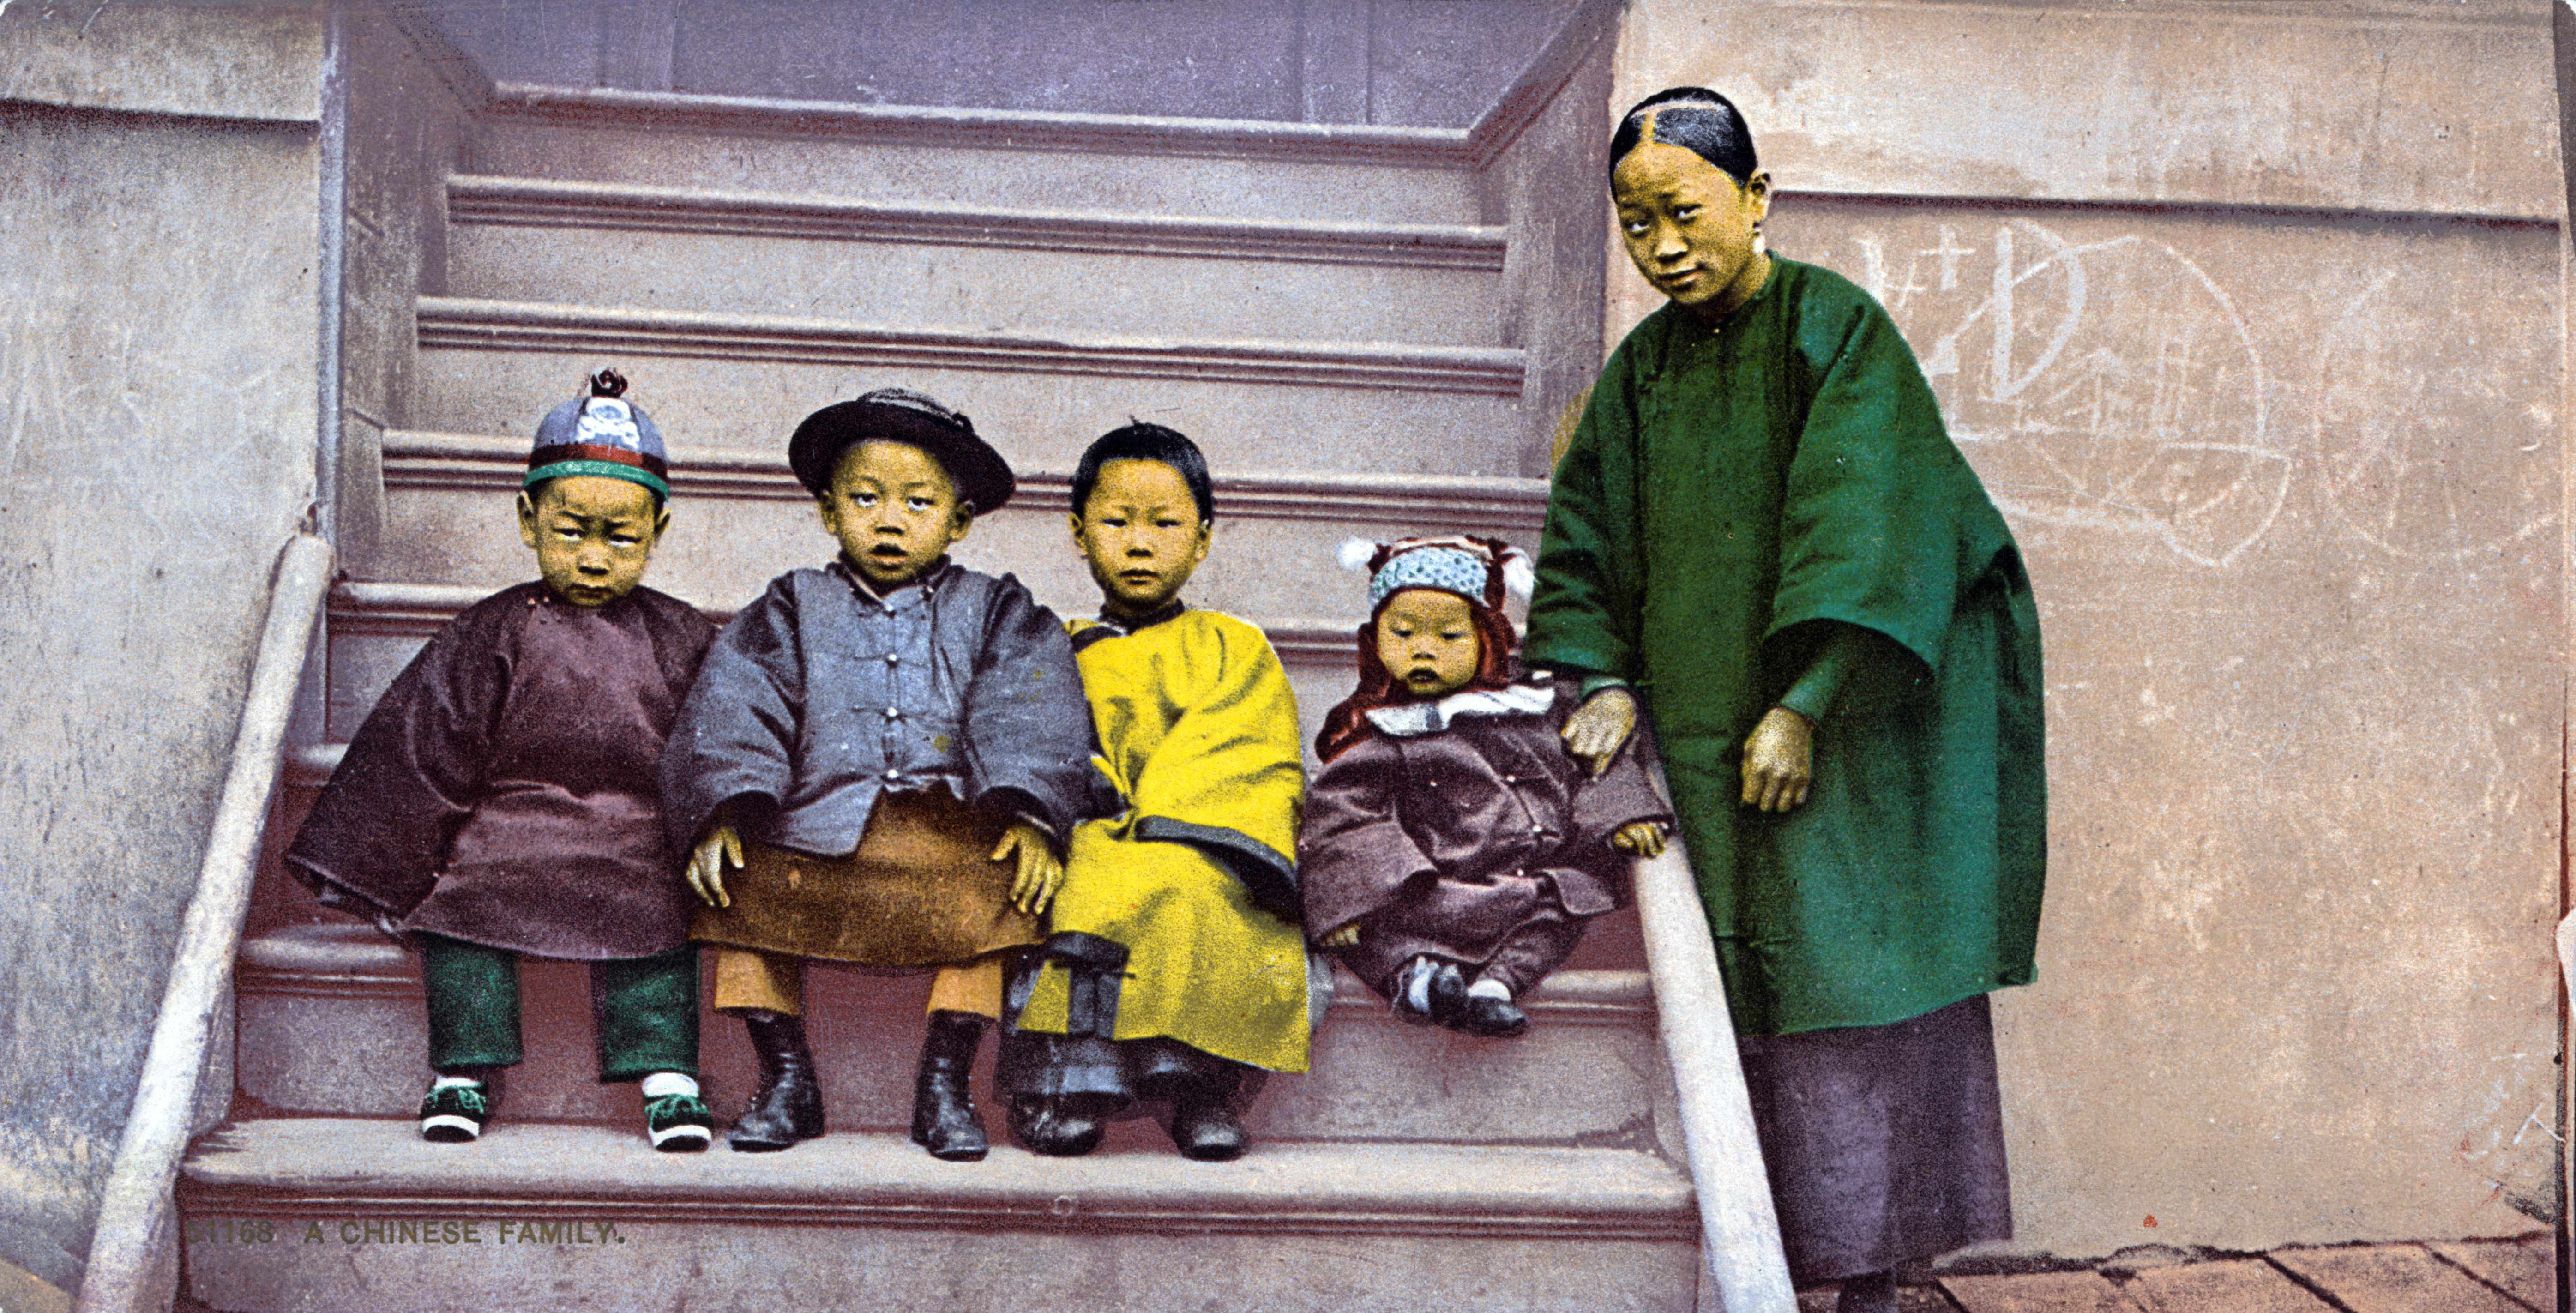 A Chinese Family in California about 1891